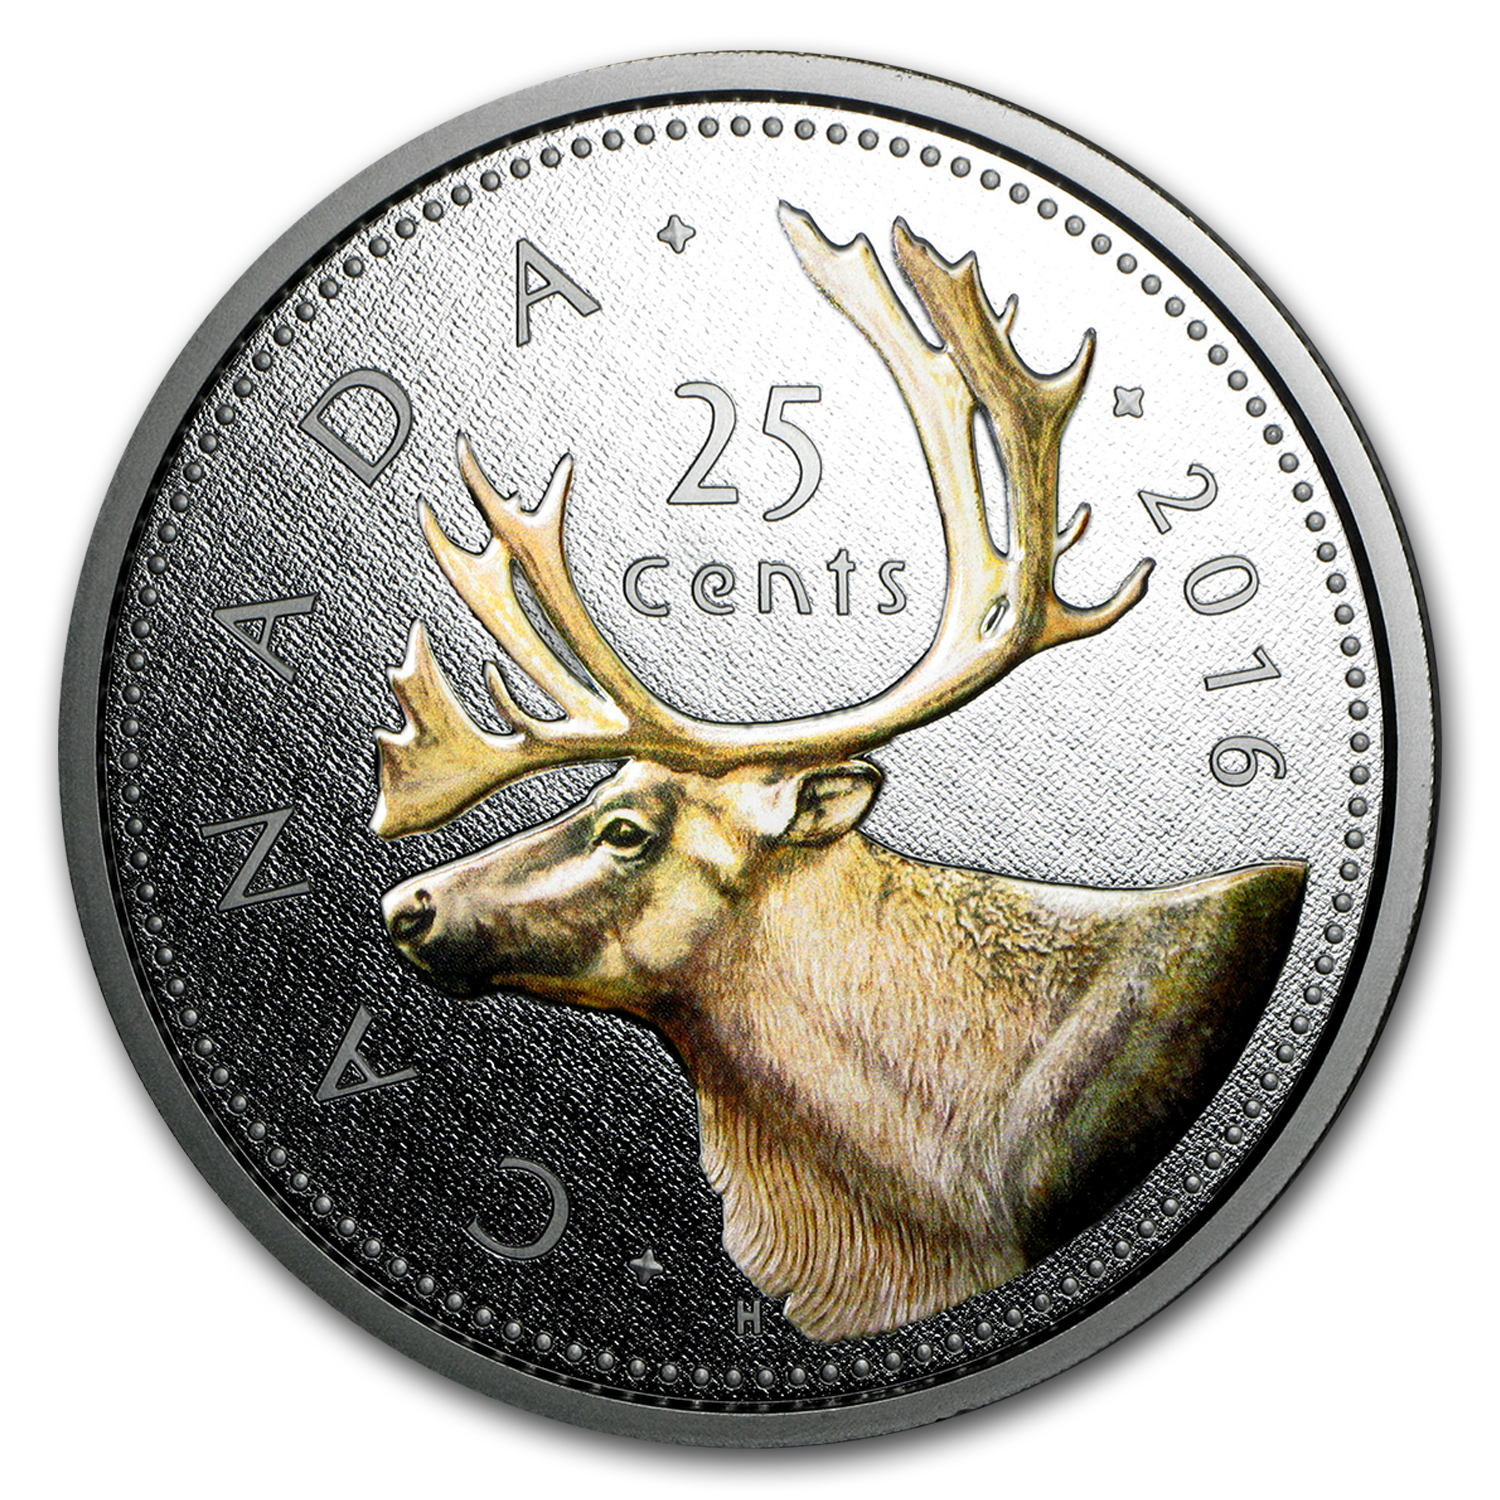 2016 Canada 5 oz Proof Silver Big Coin Series (25 Cent Coin)